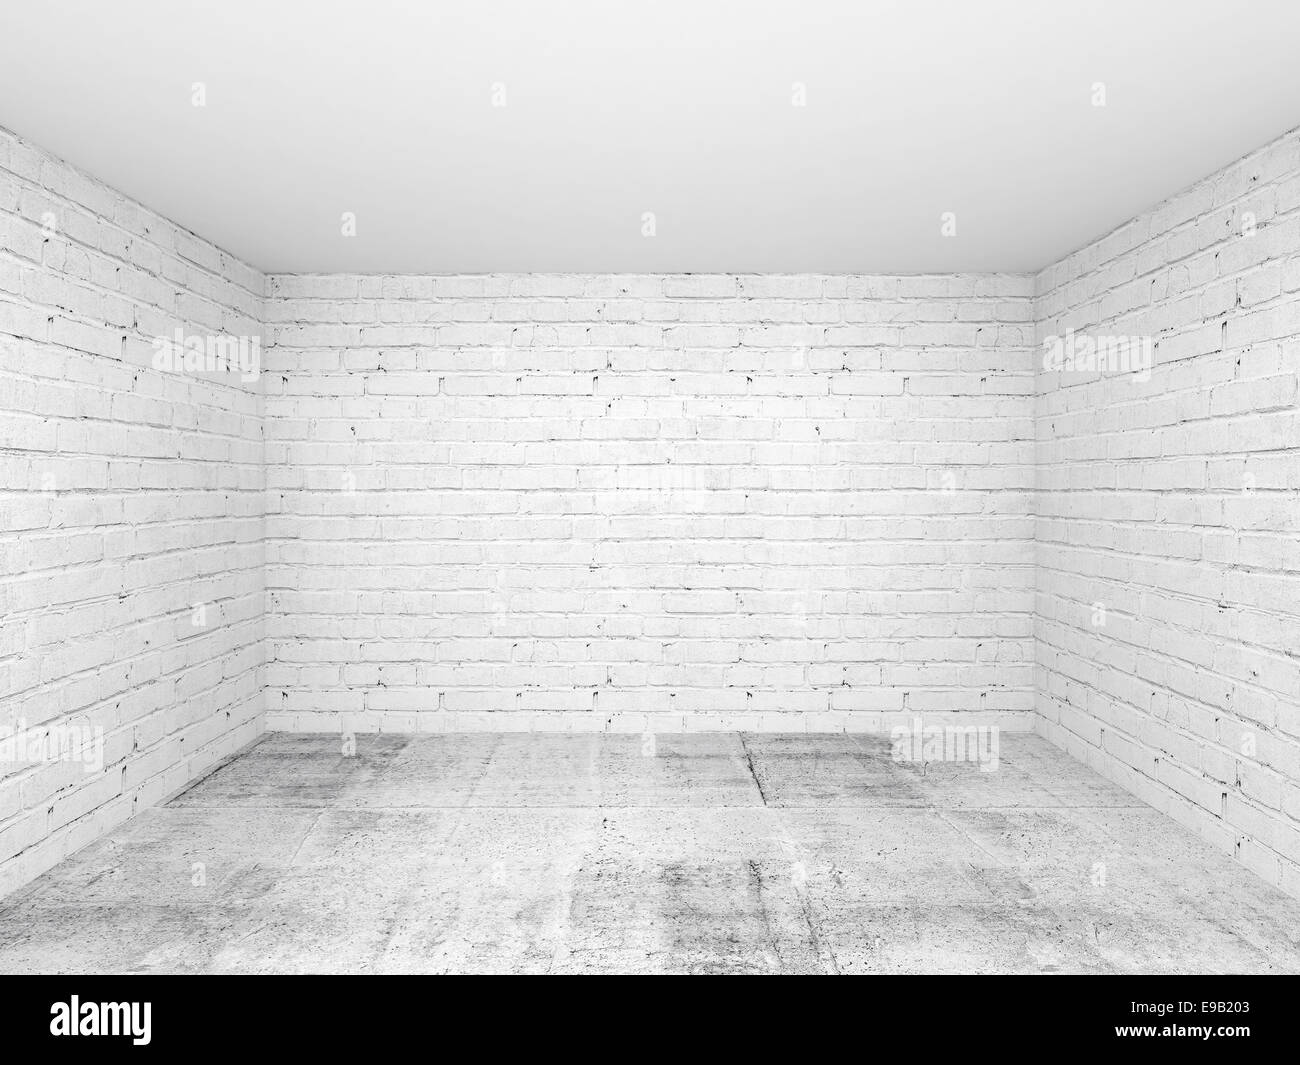 Empty white 3d room interior background with brick walls and ...